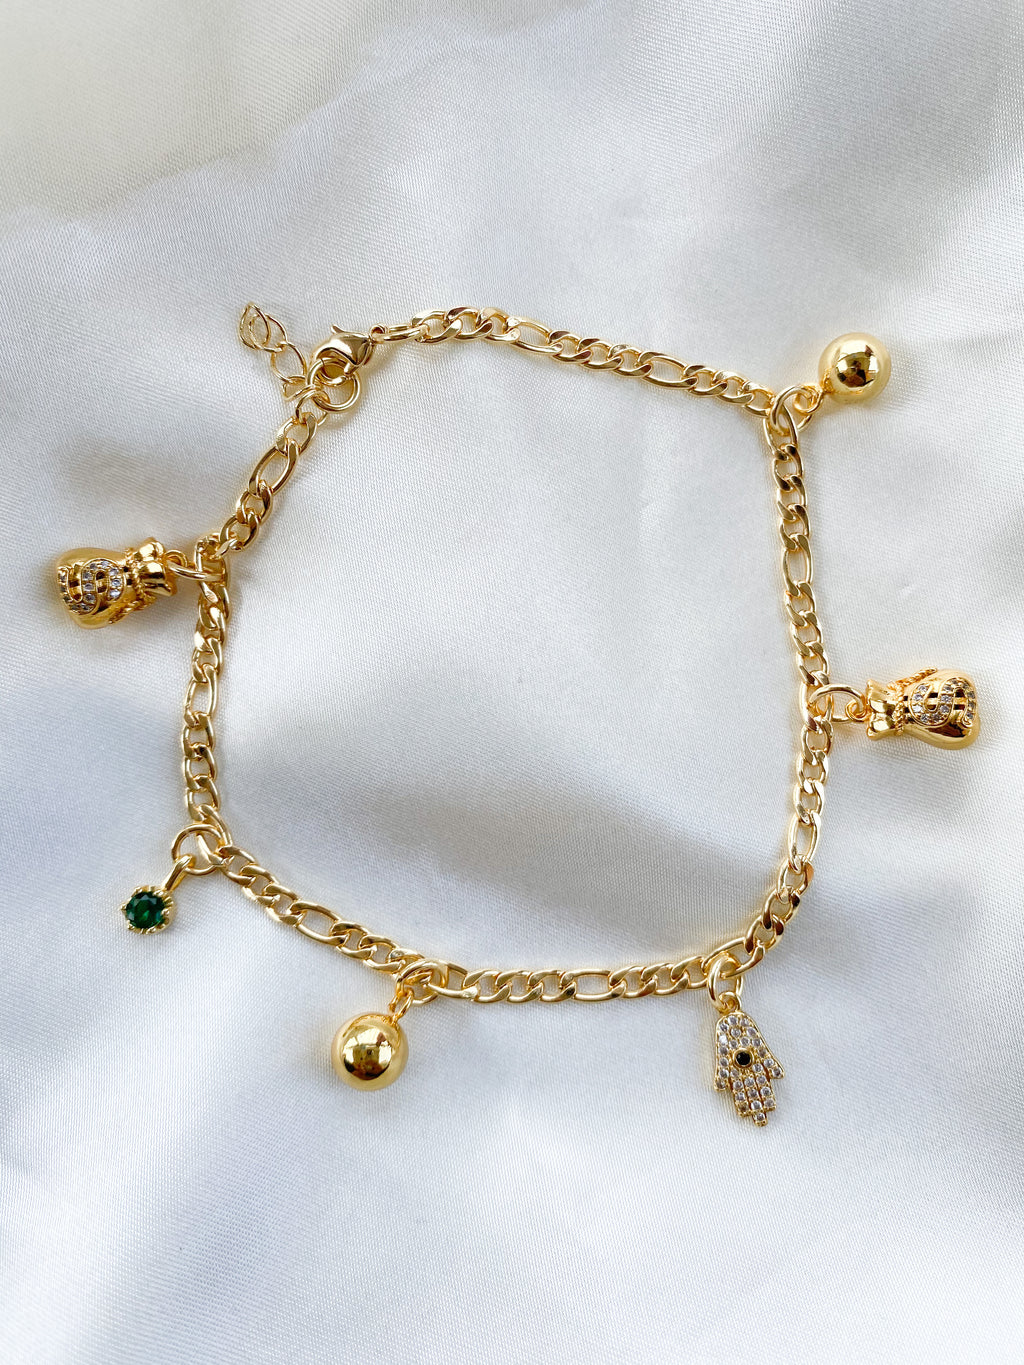 ABUNDANCE - Money Bag Anklet